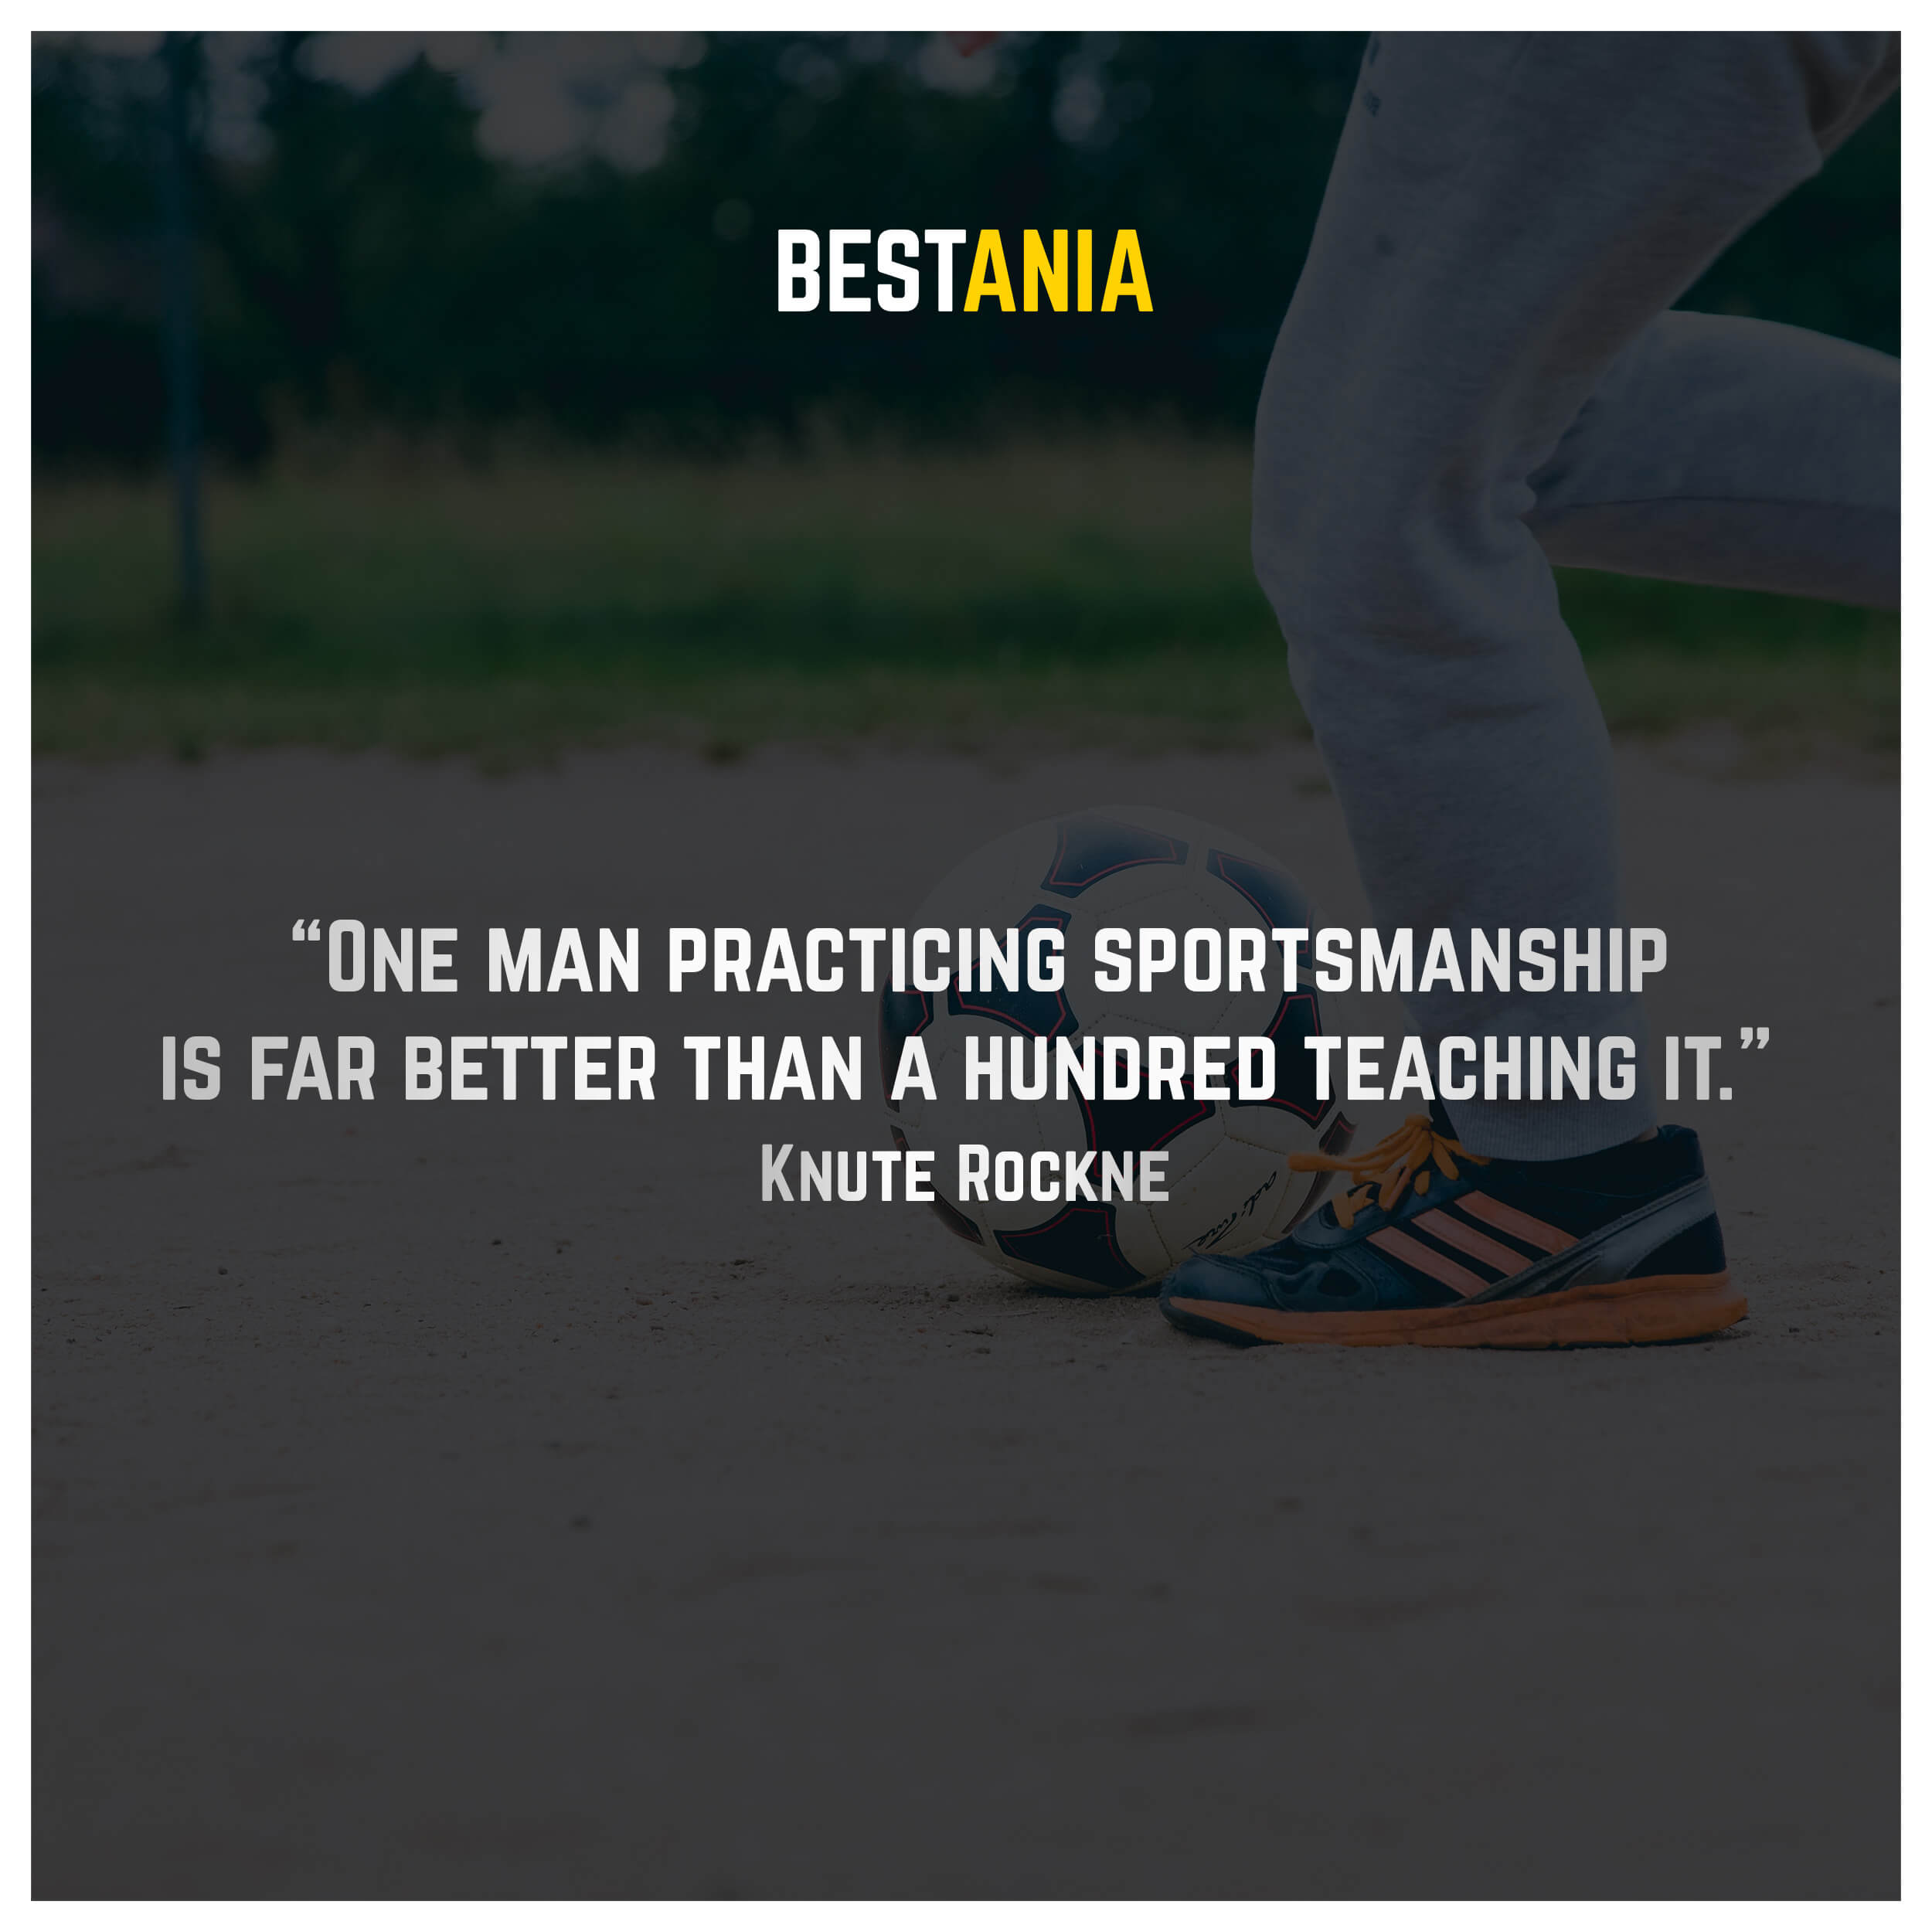 """One man practicing sportsmanship is far better than a hundred teaching it."" – Knute Rockne"